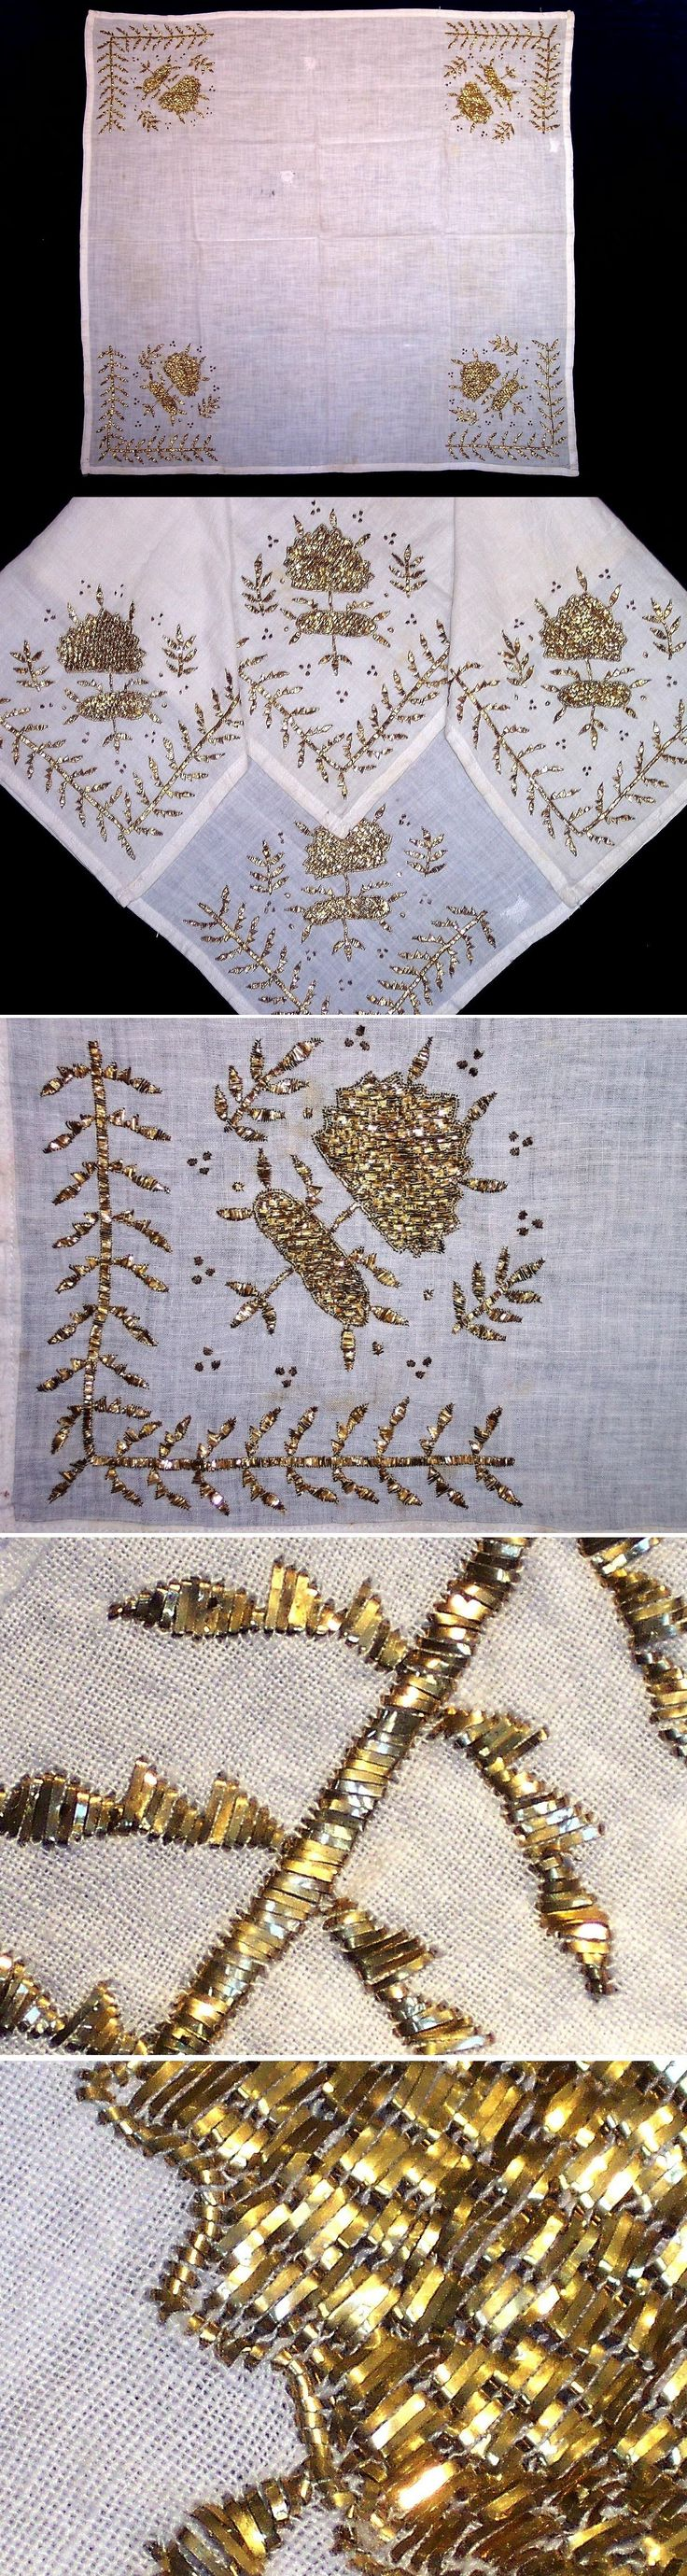 A 'çevre' (square kerchief; a decorative accessory, for the interior, but also used in costumes by both men and women). From the Bursa region. Ca. 1925-1950. The 'tel kırma' embroidery is 'two-sided' (identical on both sides); motives are obtained by sticking narrow metallic strips (often silver) through the fabric and folding them. Design: leaves and twigs. (Kavak Collection of Anatolian Textiles -Antwerpen/Belgium).